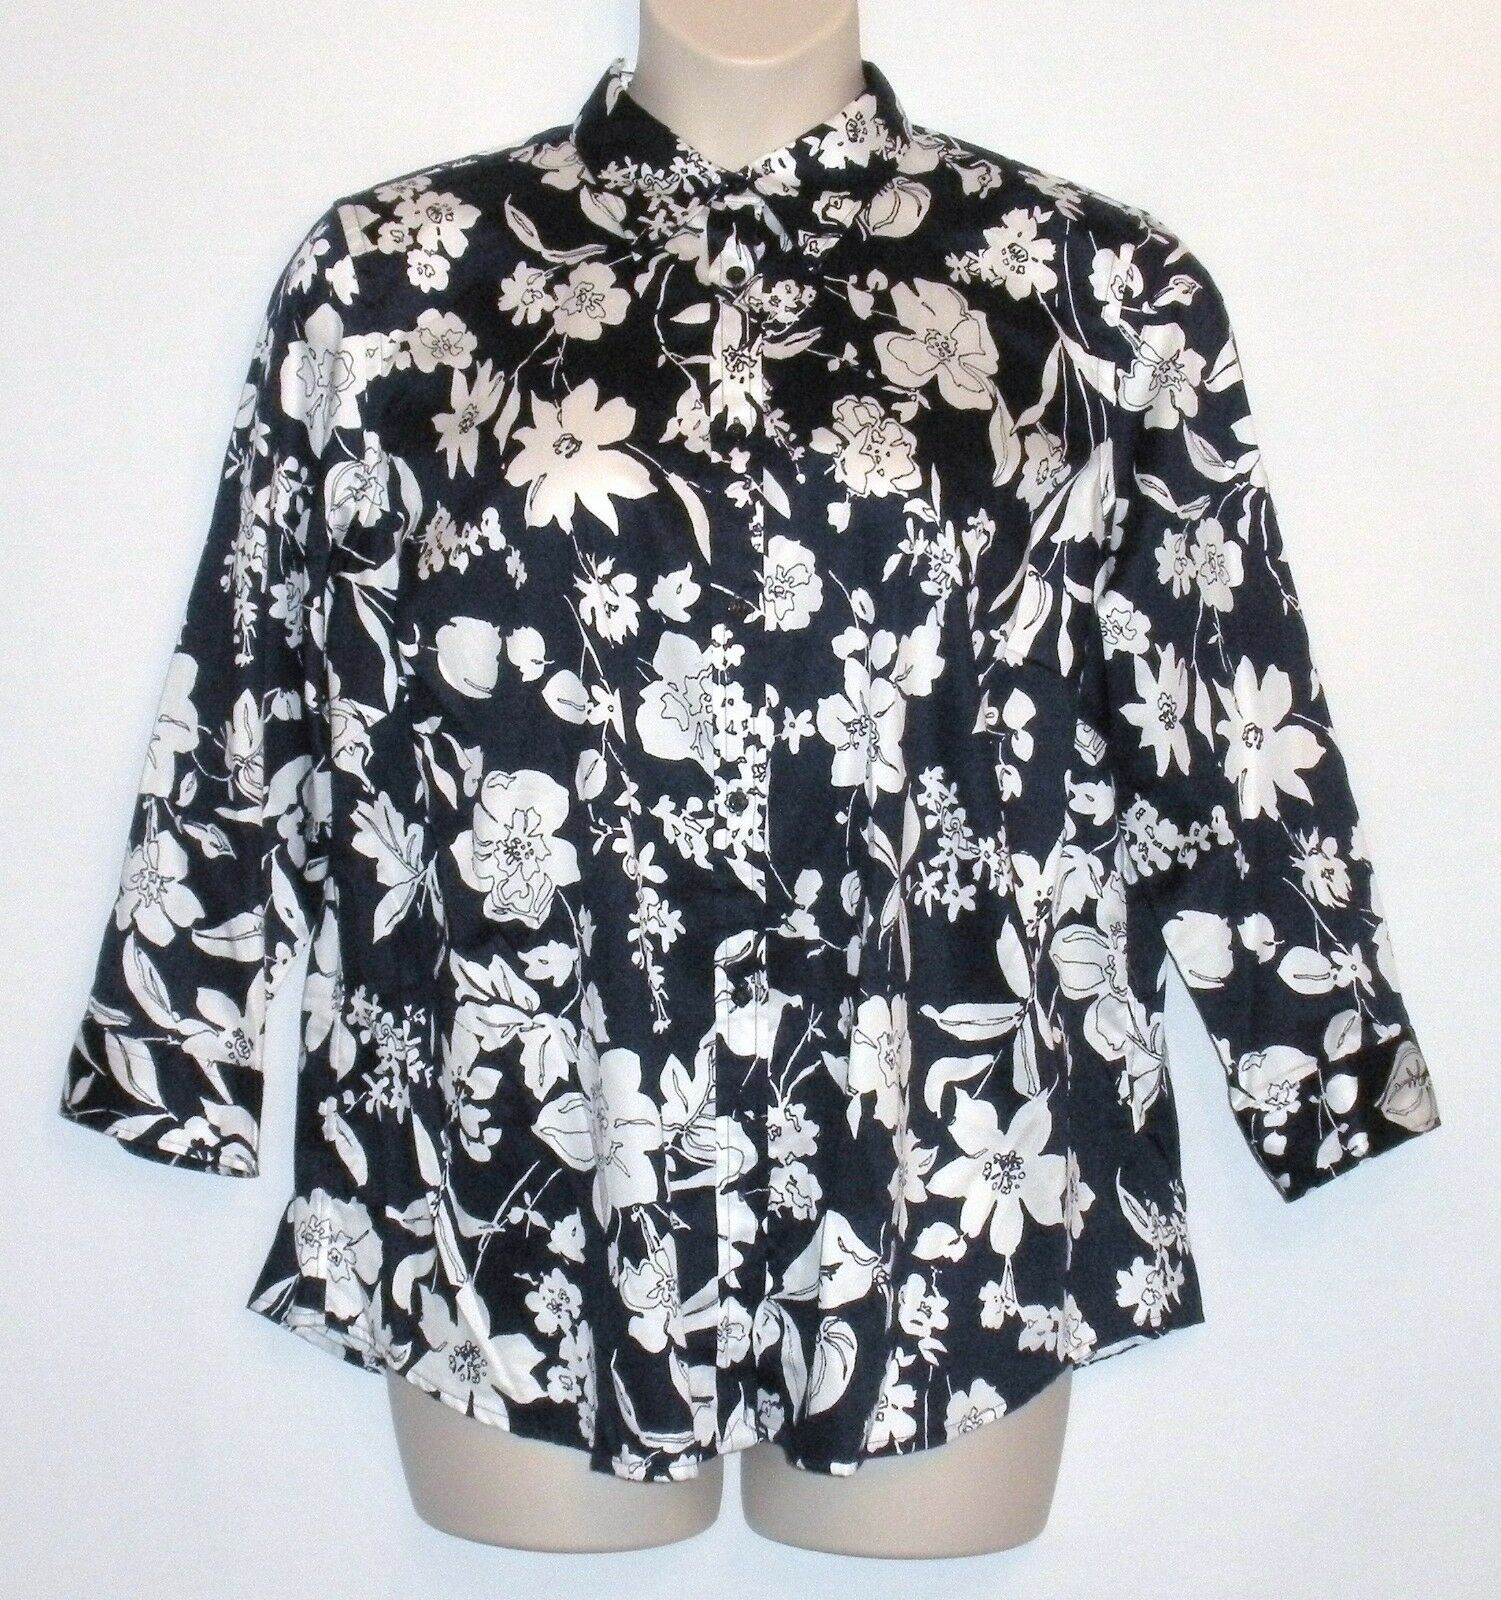 NWT MSRP  LAUREN RALPH LAUREN Floral Print Button Shirt, Navy Pearl, PLUS